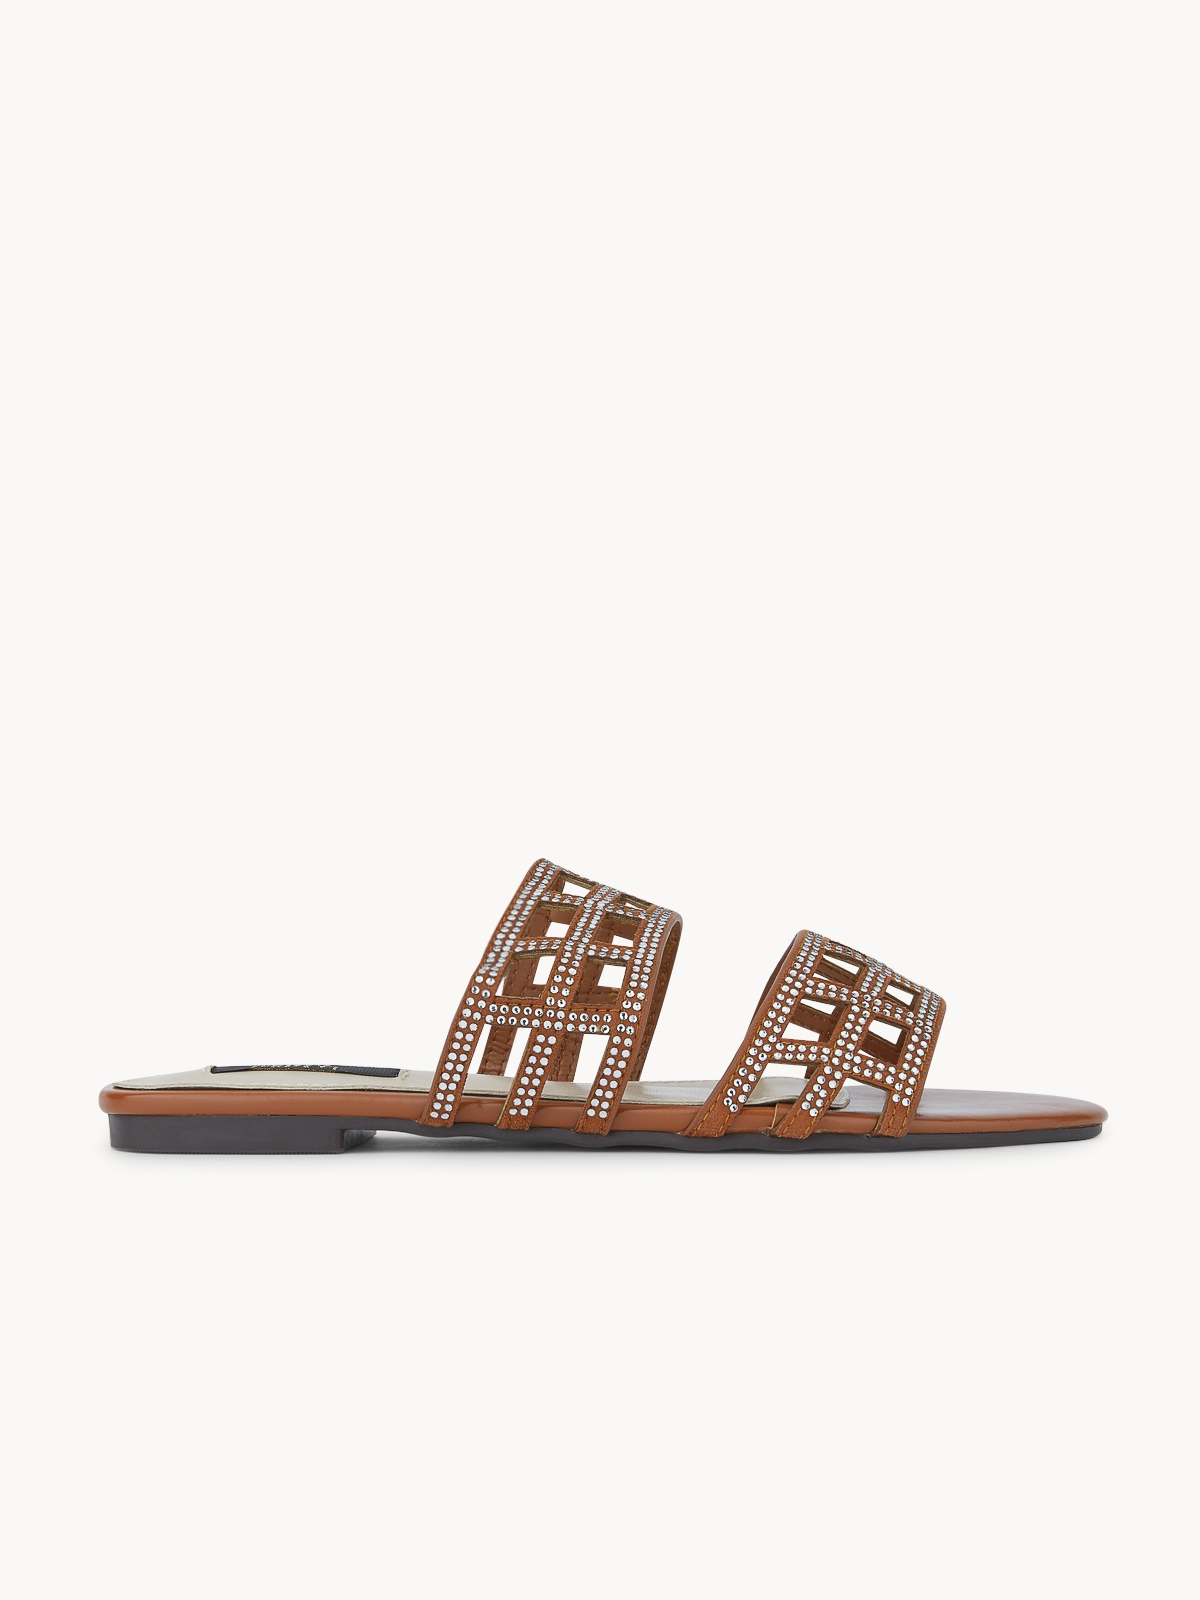 March Shoes West Sandals Brown